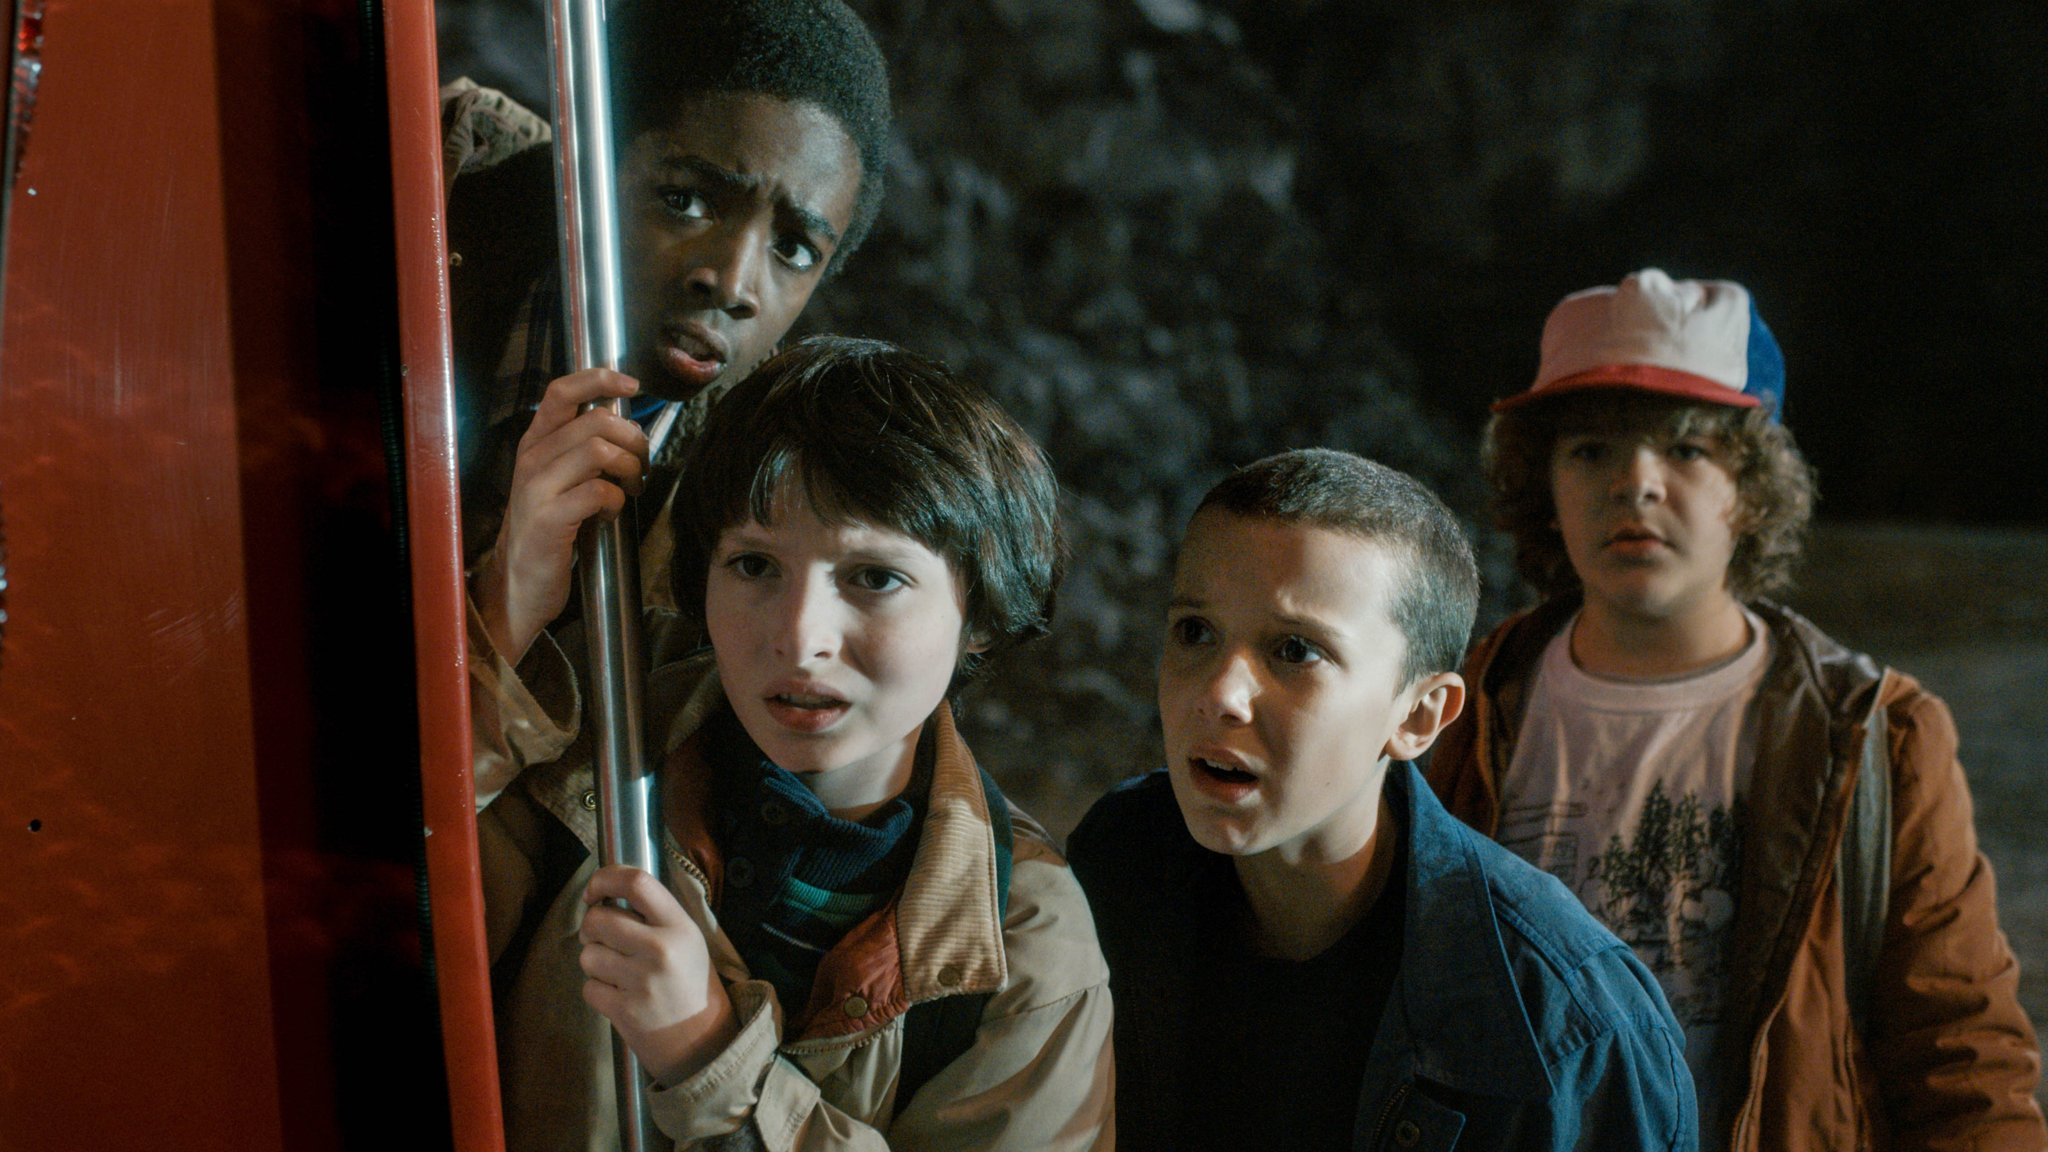 Netflix looks to become world's entertainer as it hits milestone